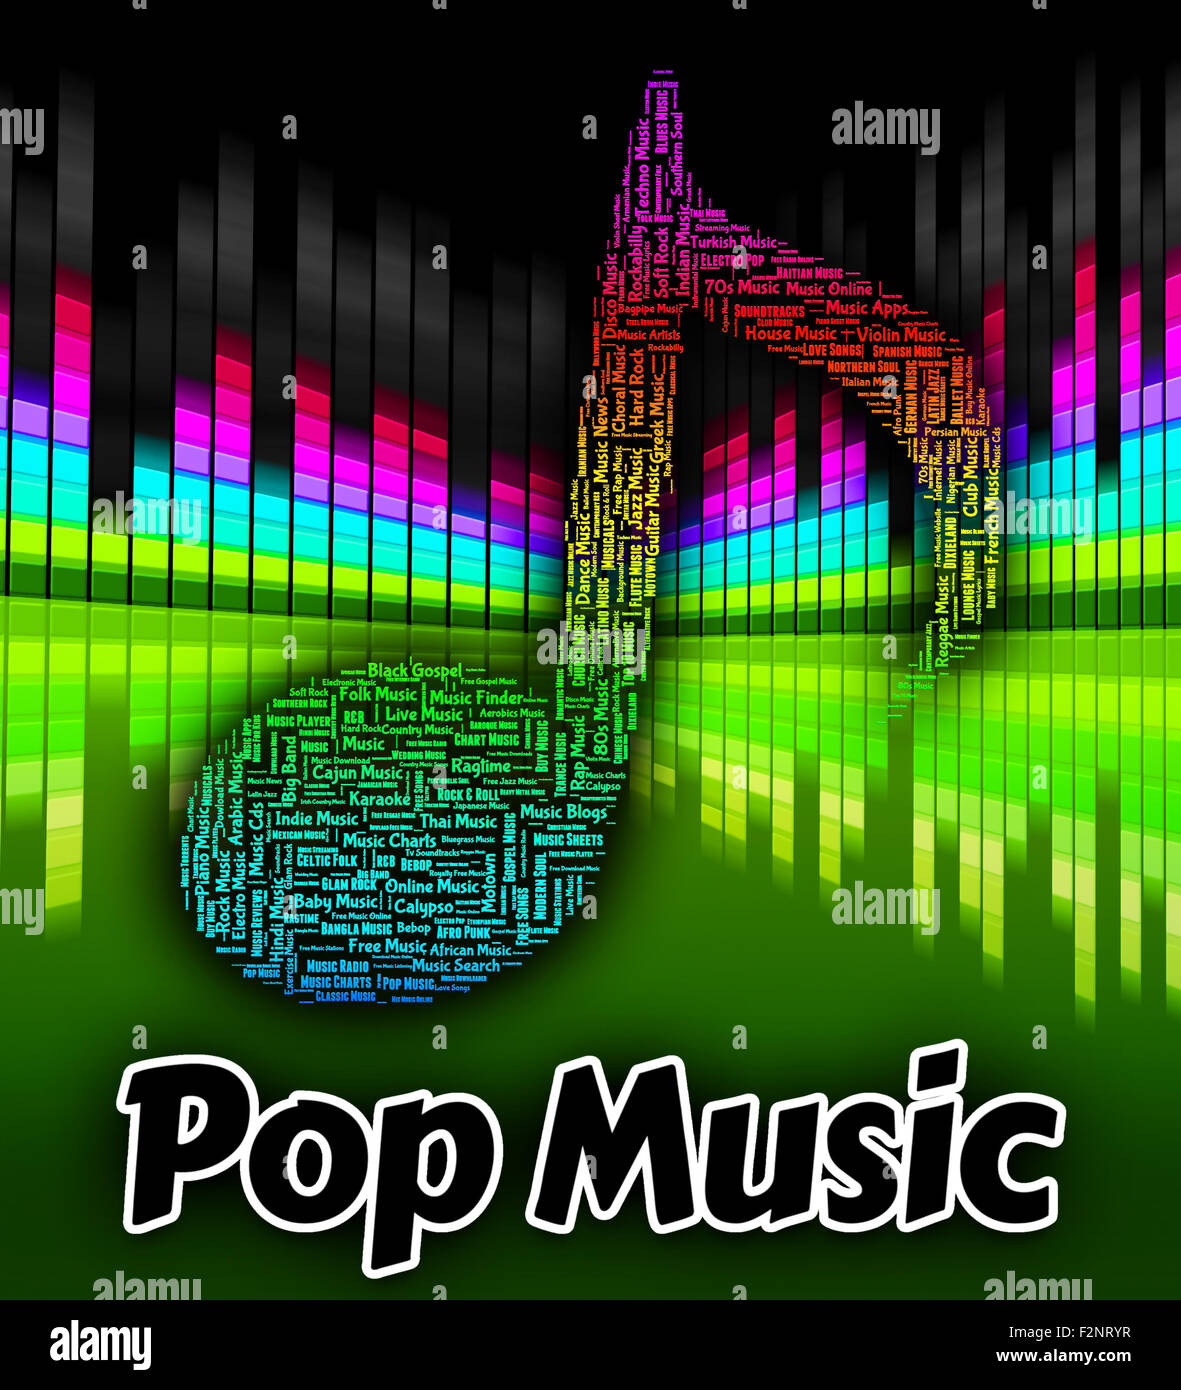 Pop Music Representing Sound Tracks And Songs Stock Photo